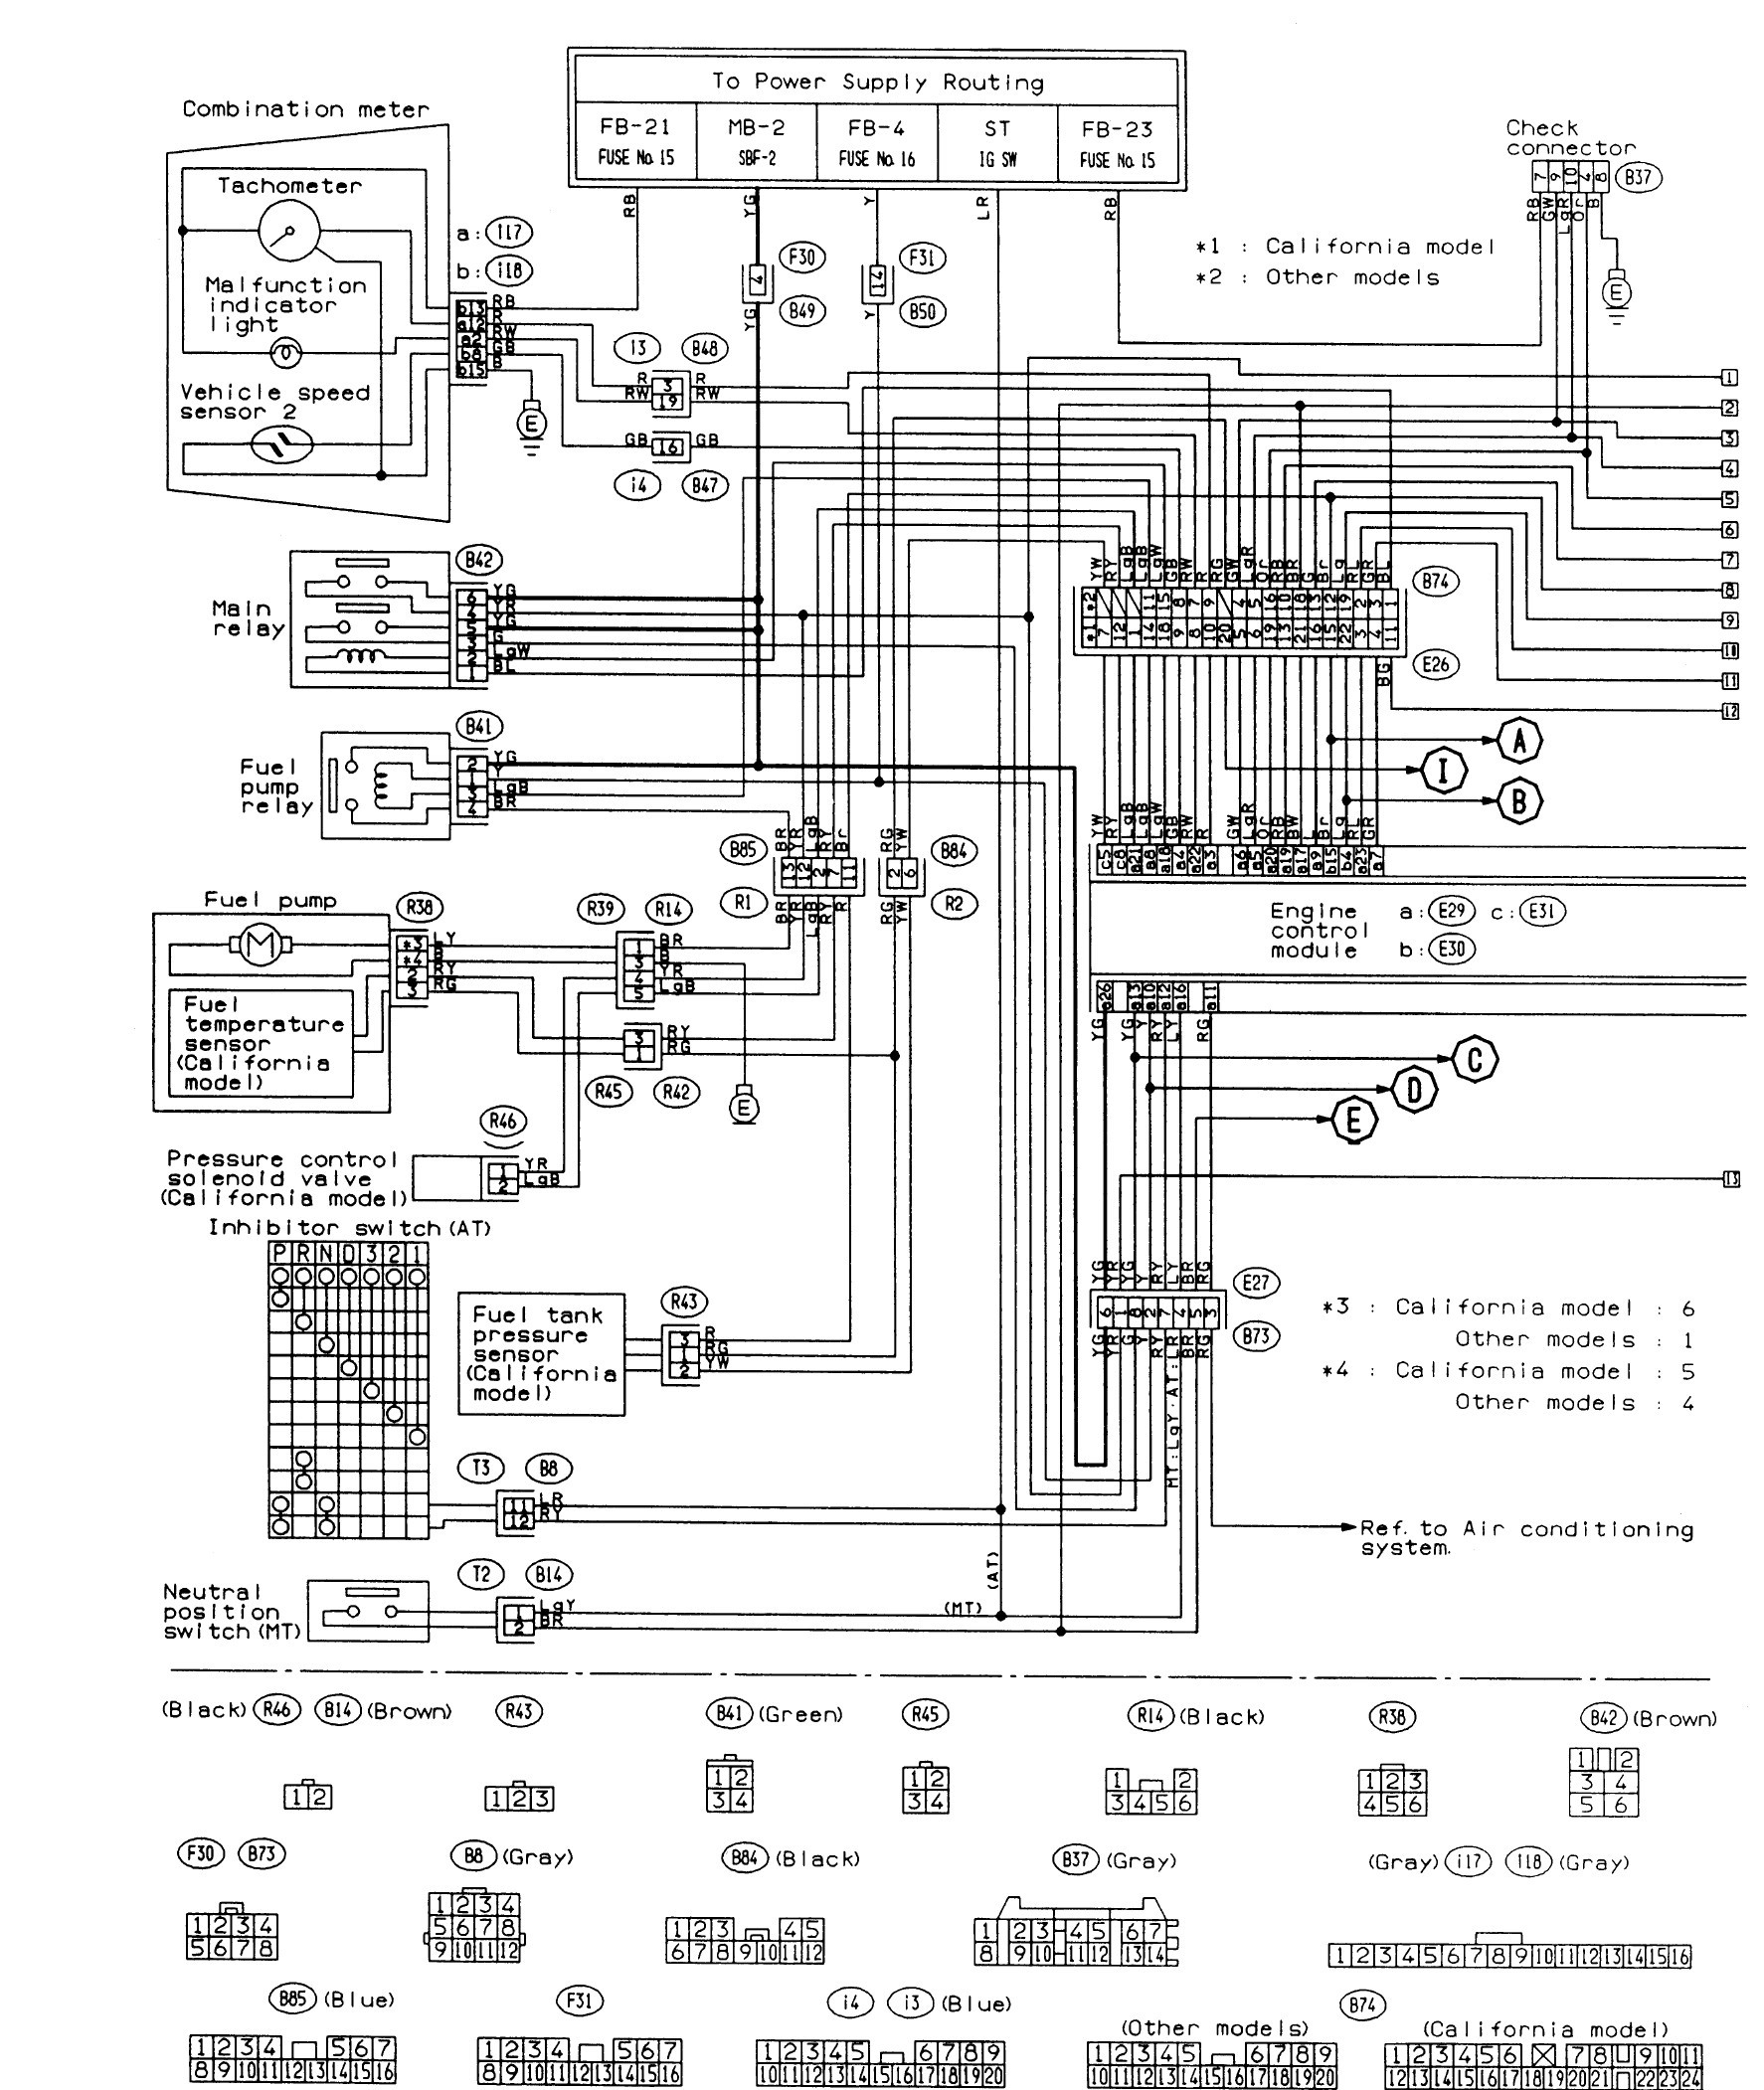 subaru trailer wiring harness diagram wiring diagrams2007 subaru outback wiring wiring diagram detailedwiring harness for 2007 subaru outback wiring schematic diagram 1998